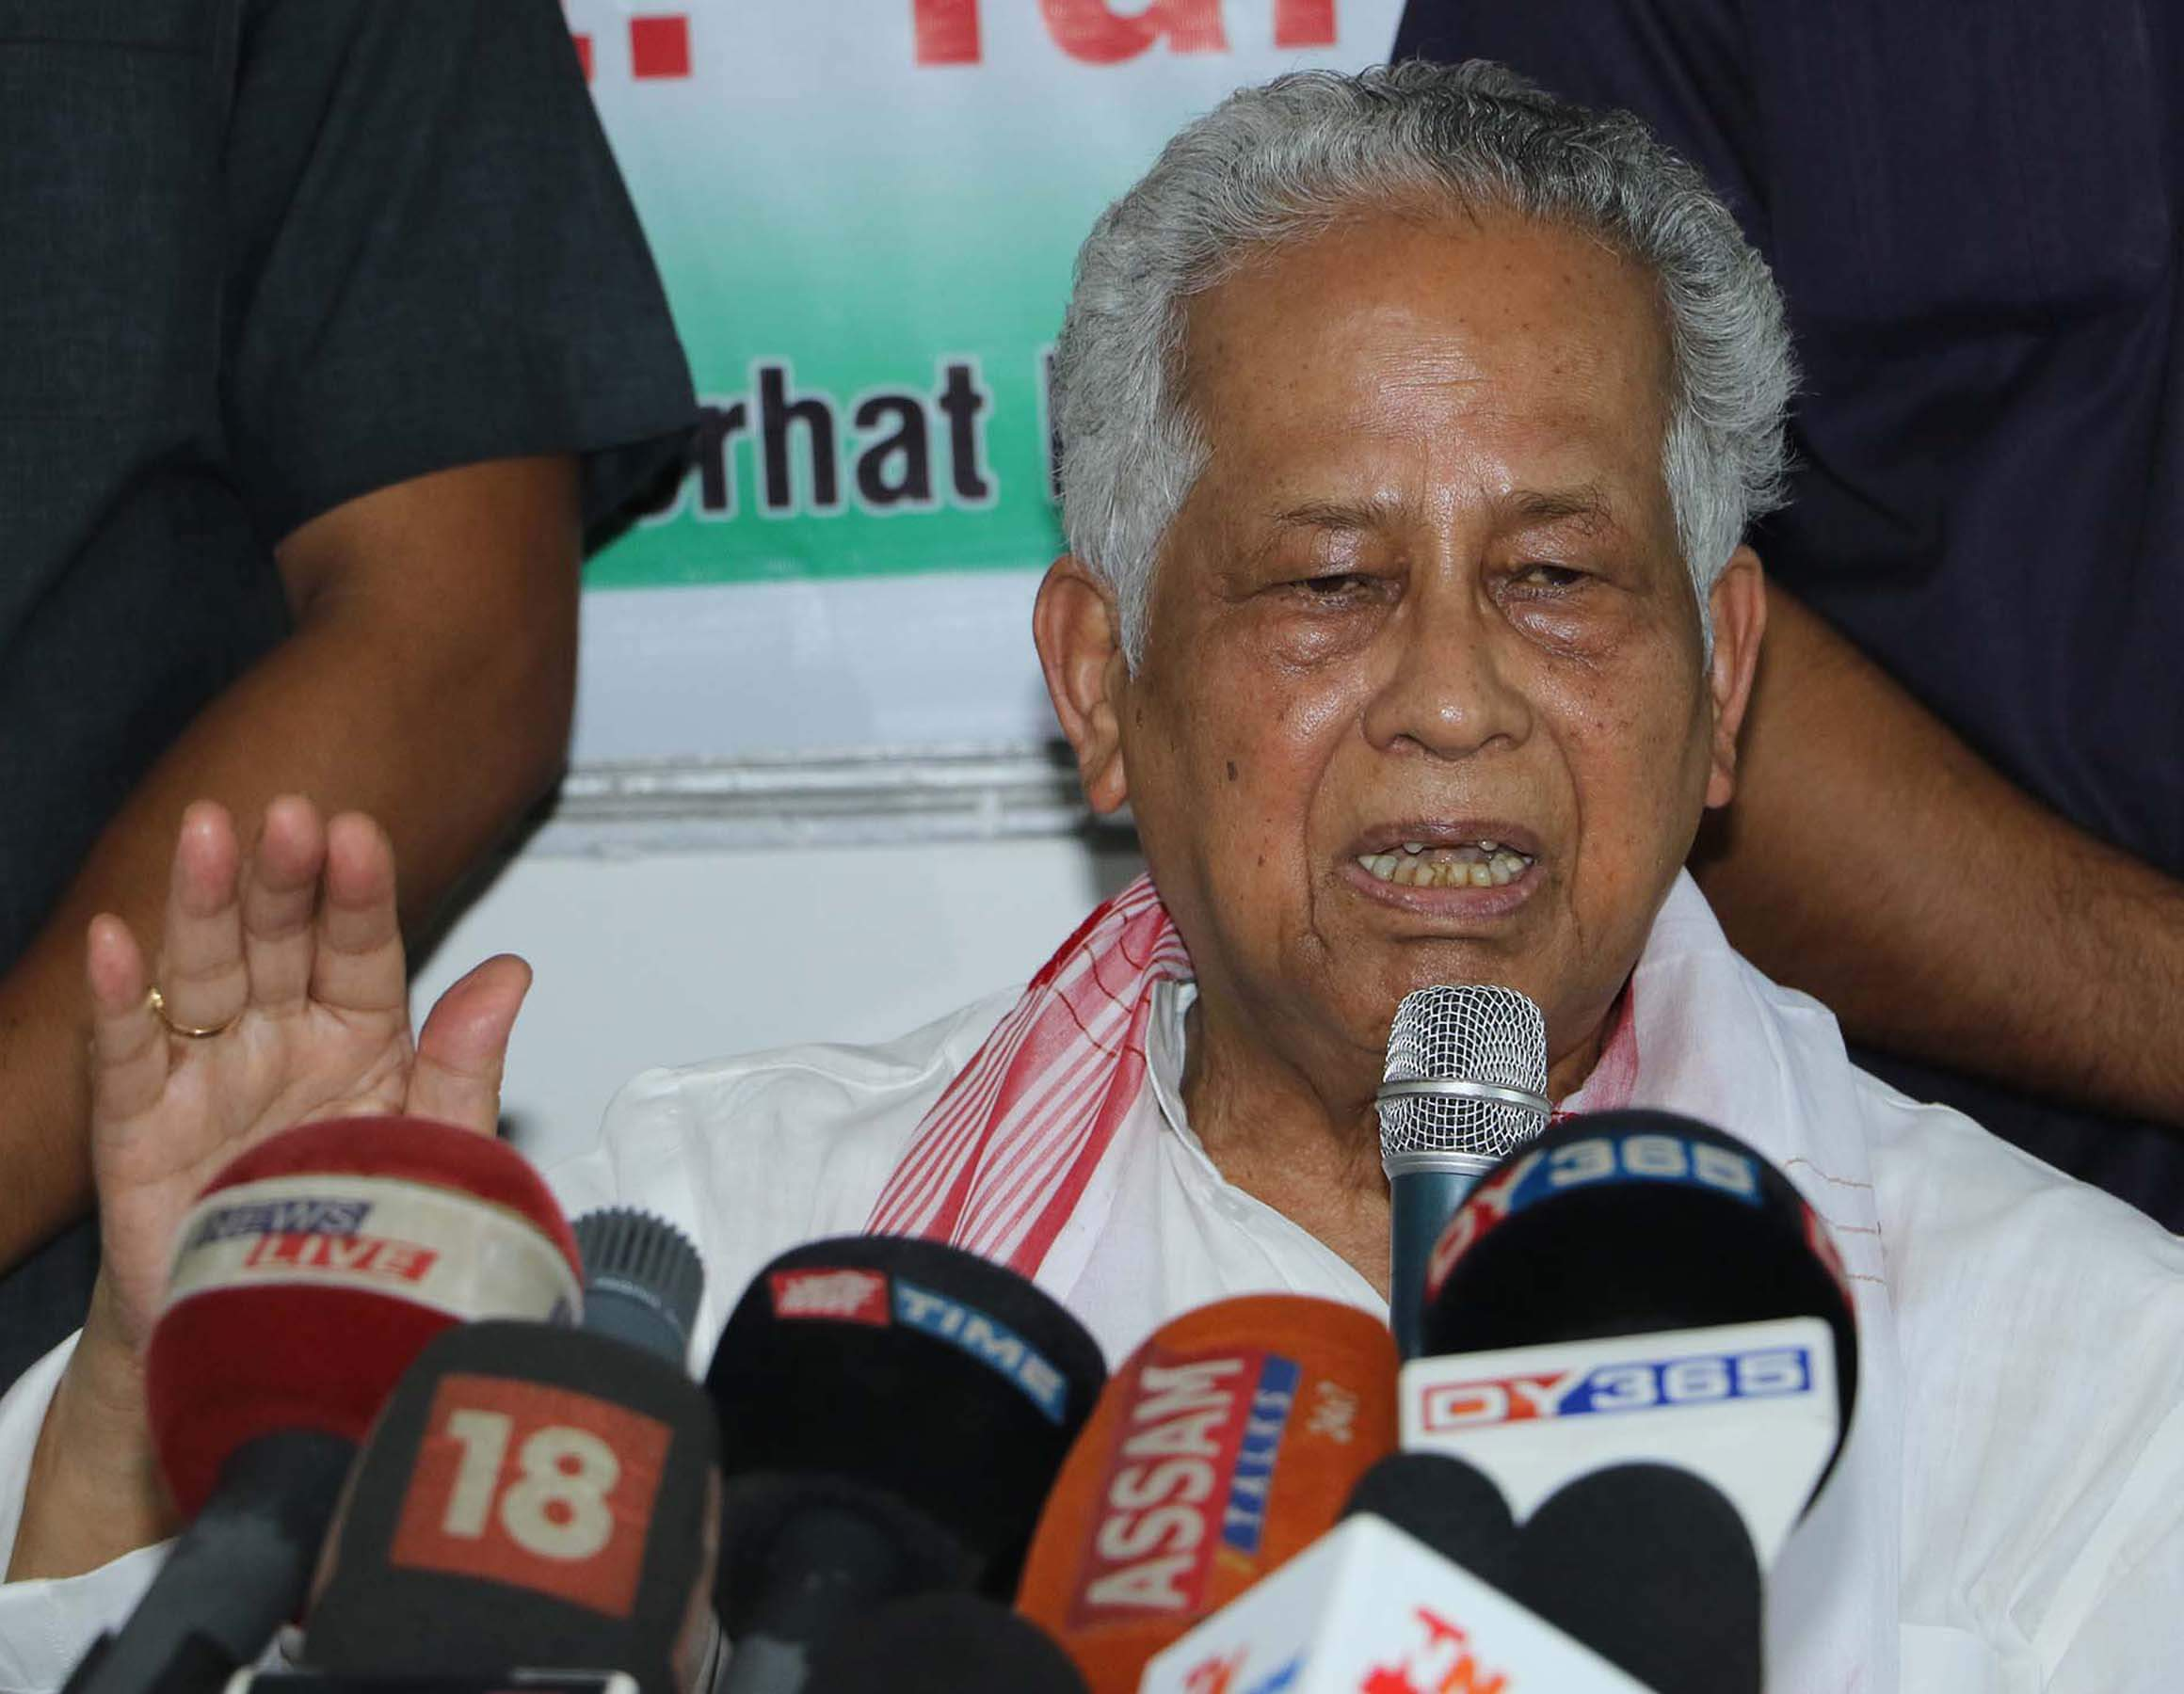 Pranab made a big mistake: Tarun Gogoi